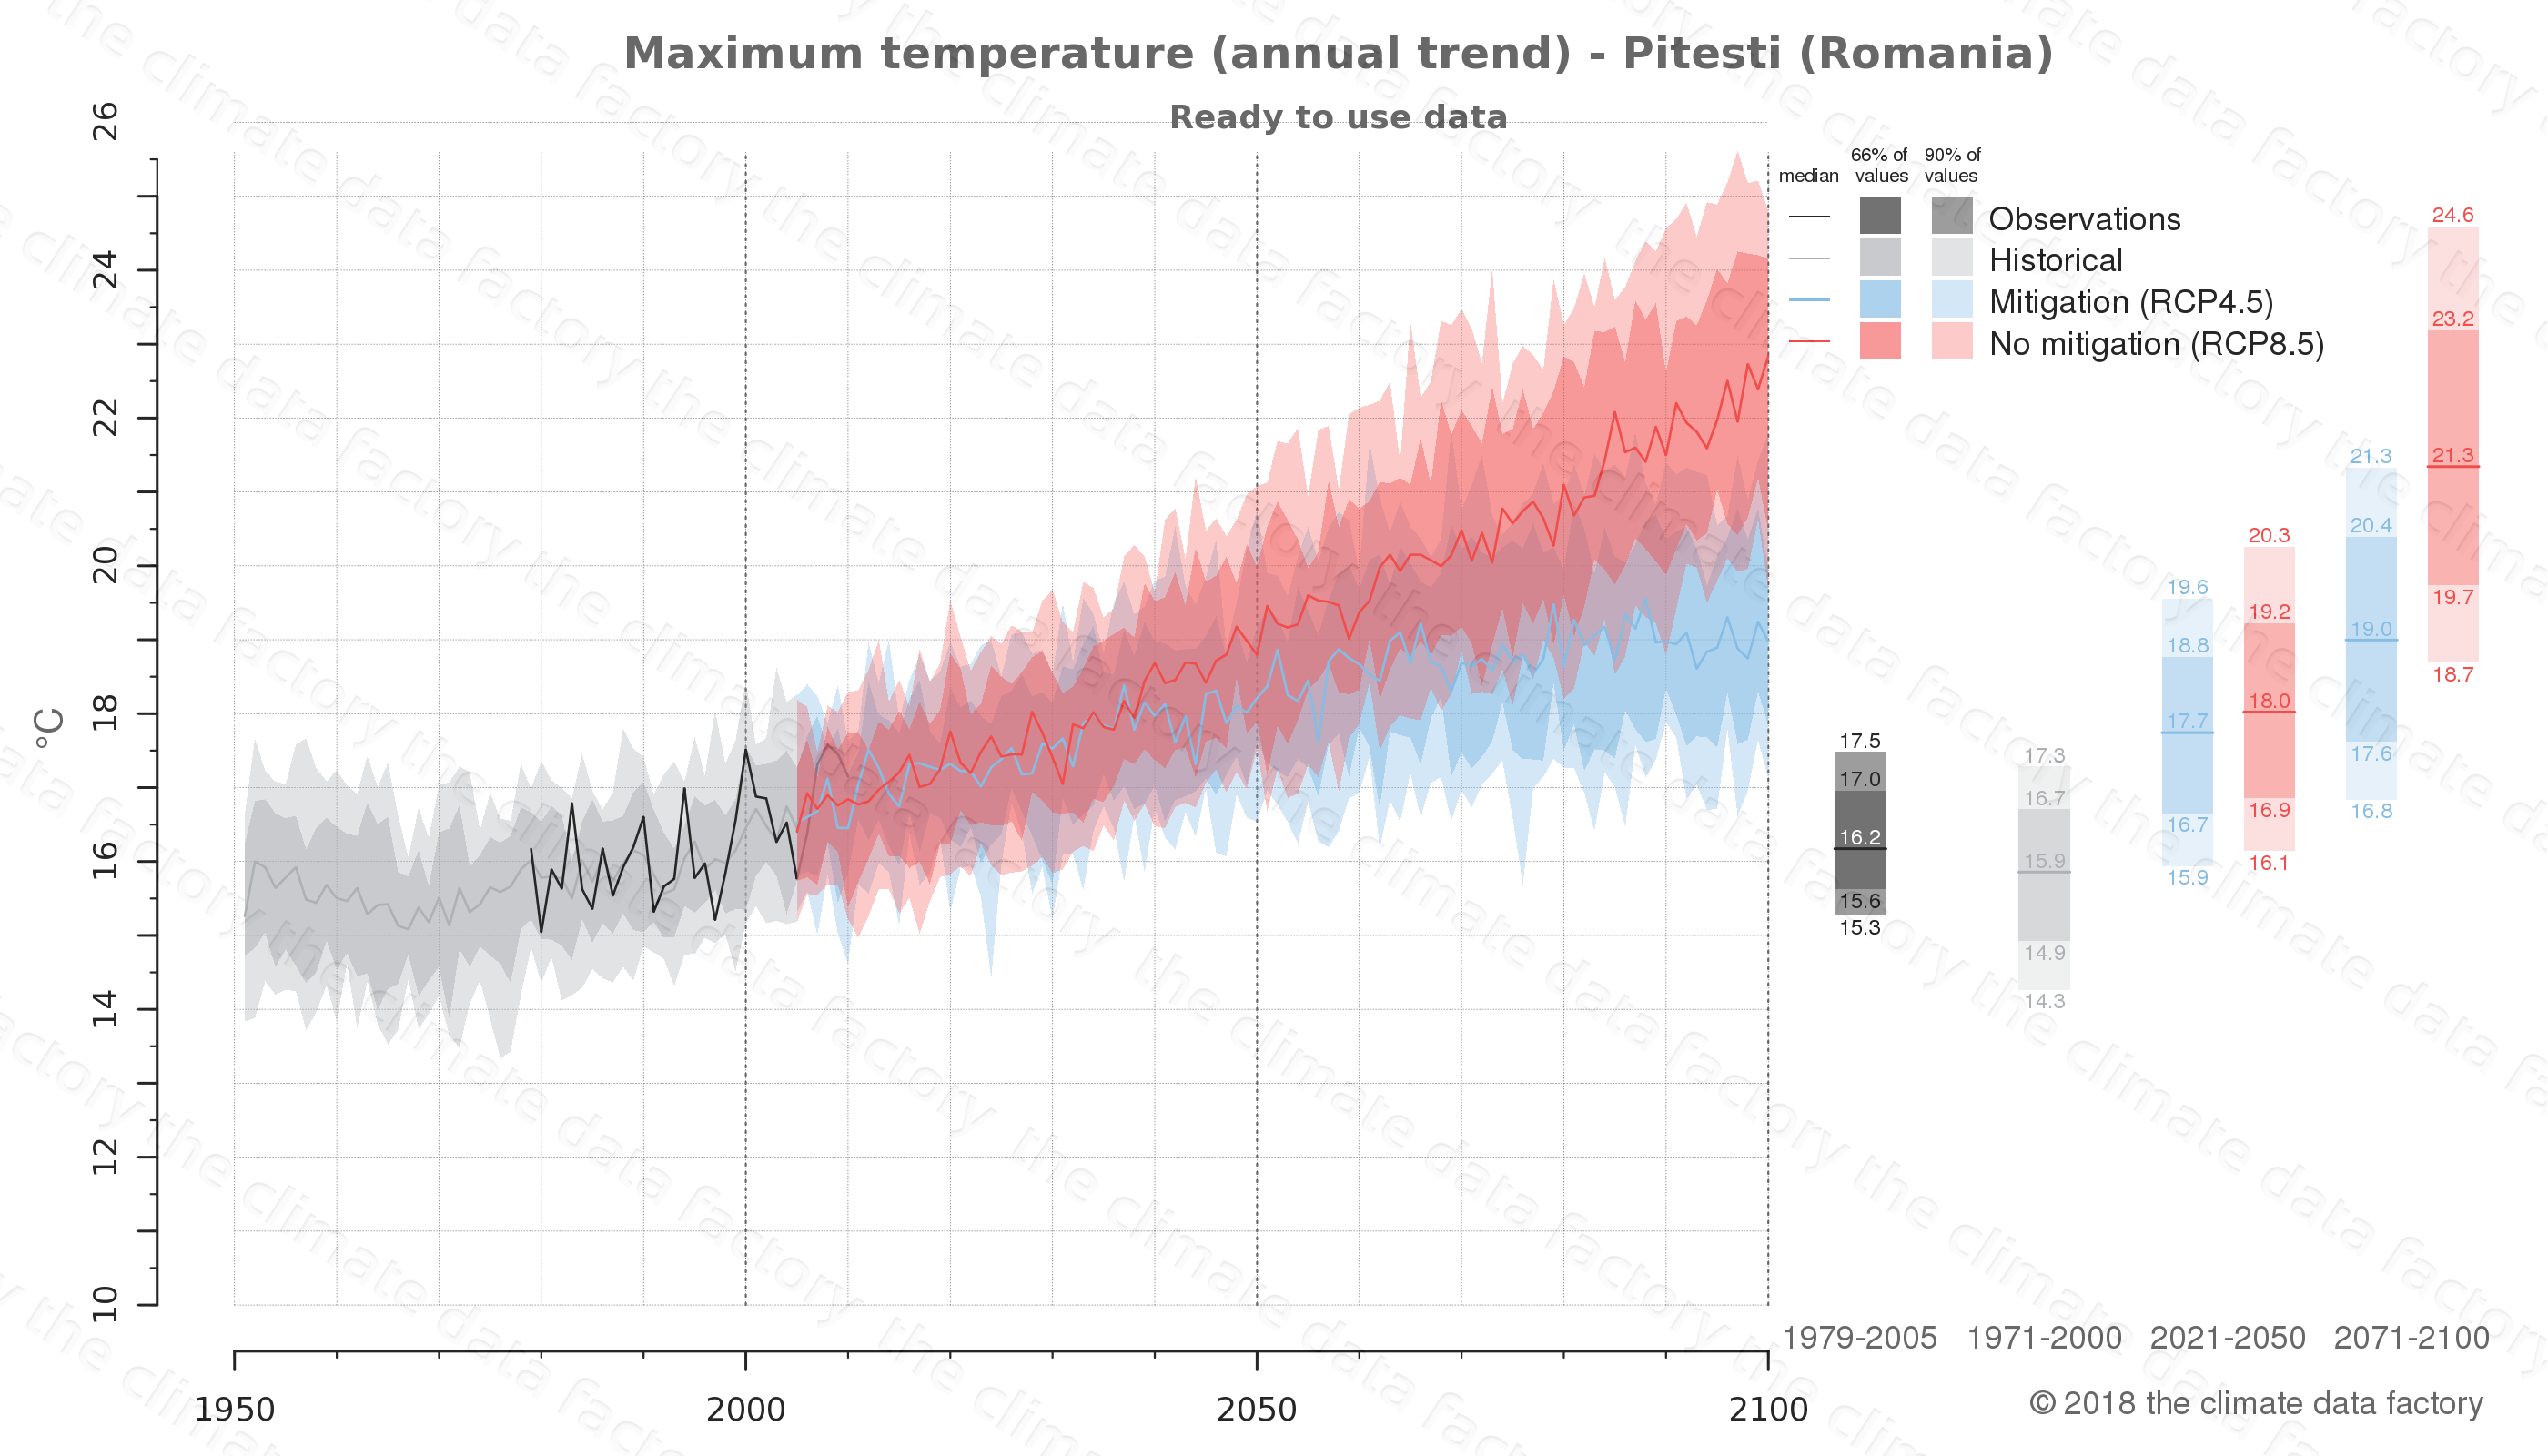 climate change data policy adaptation climate graph city data maximum-temperature pitesti romania